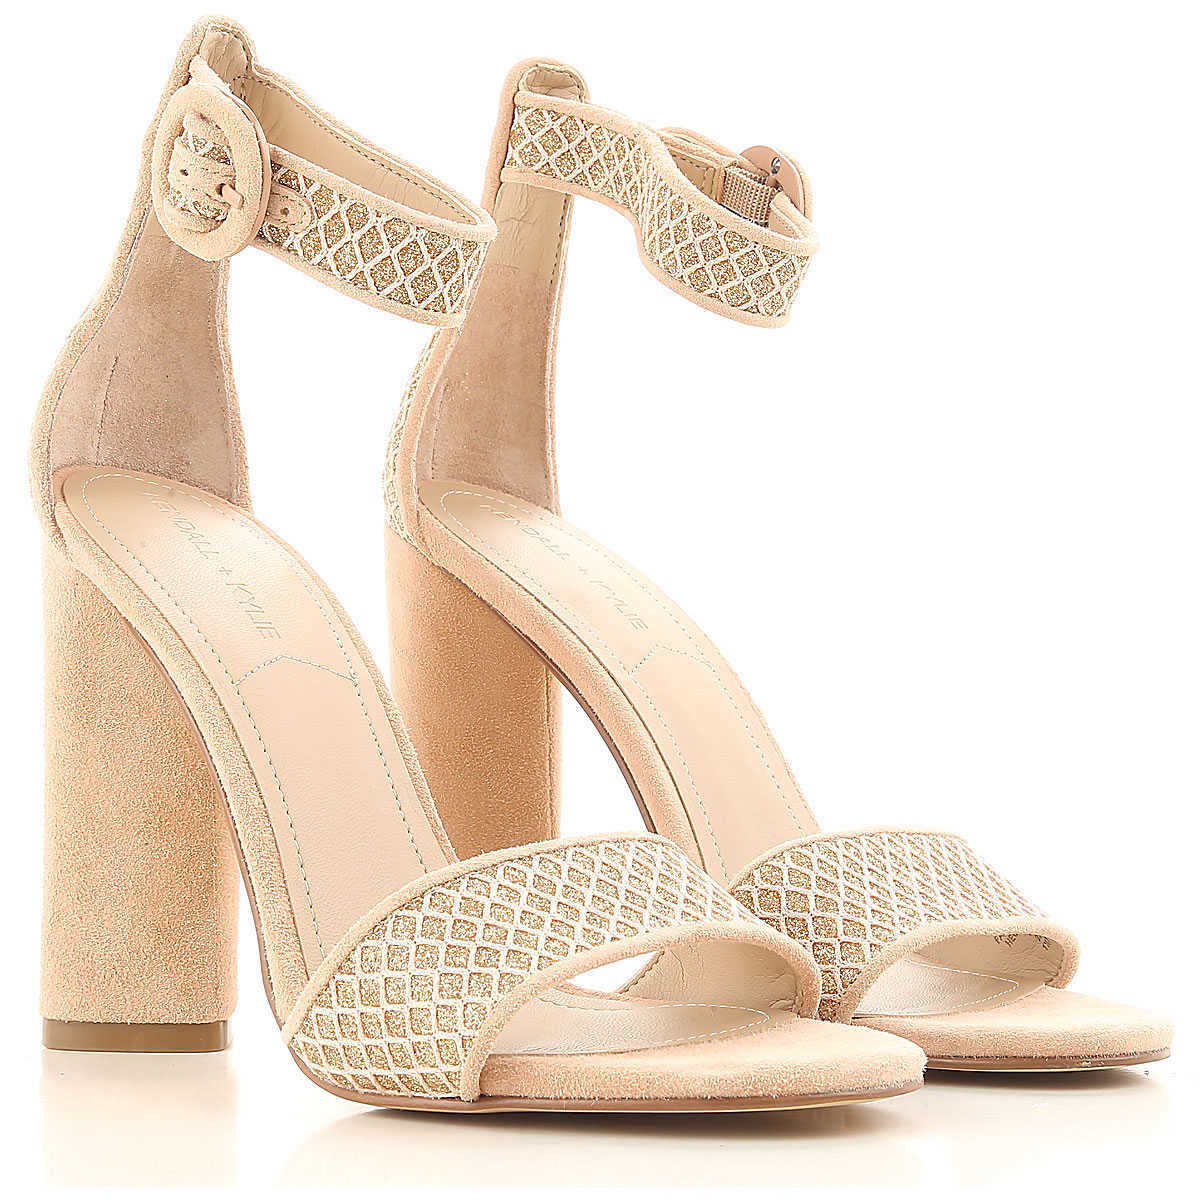 Kendall Kylie Sandals for Women On Sale in Outlet Light Pink DK - GOOFASH - Womens SANDALS